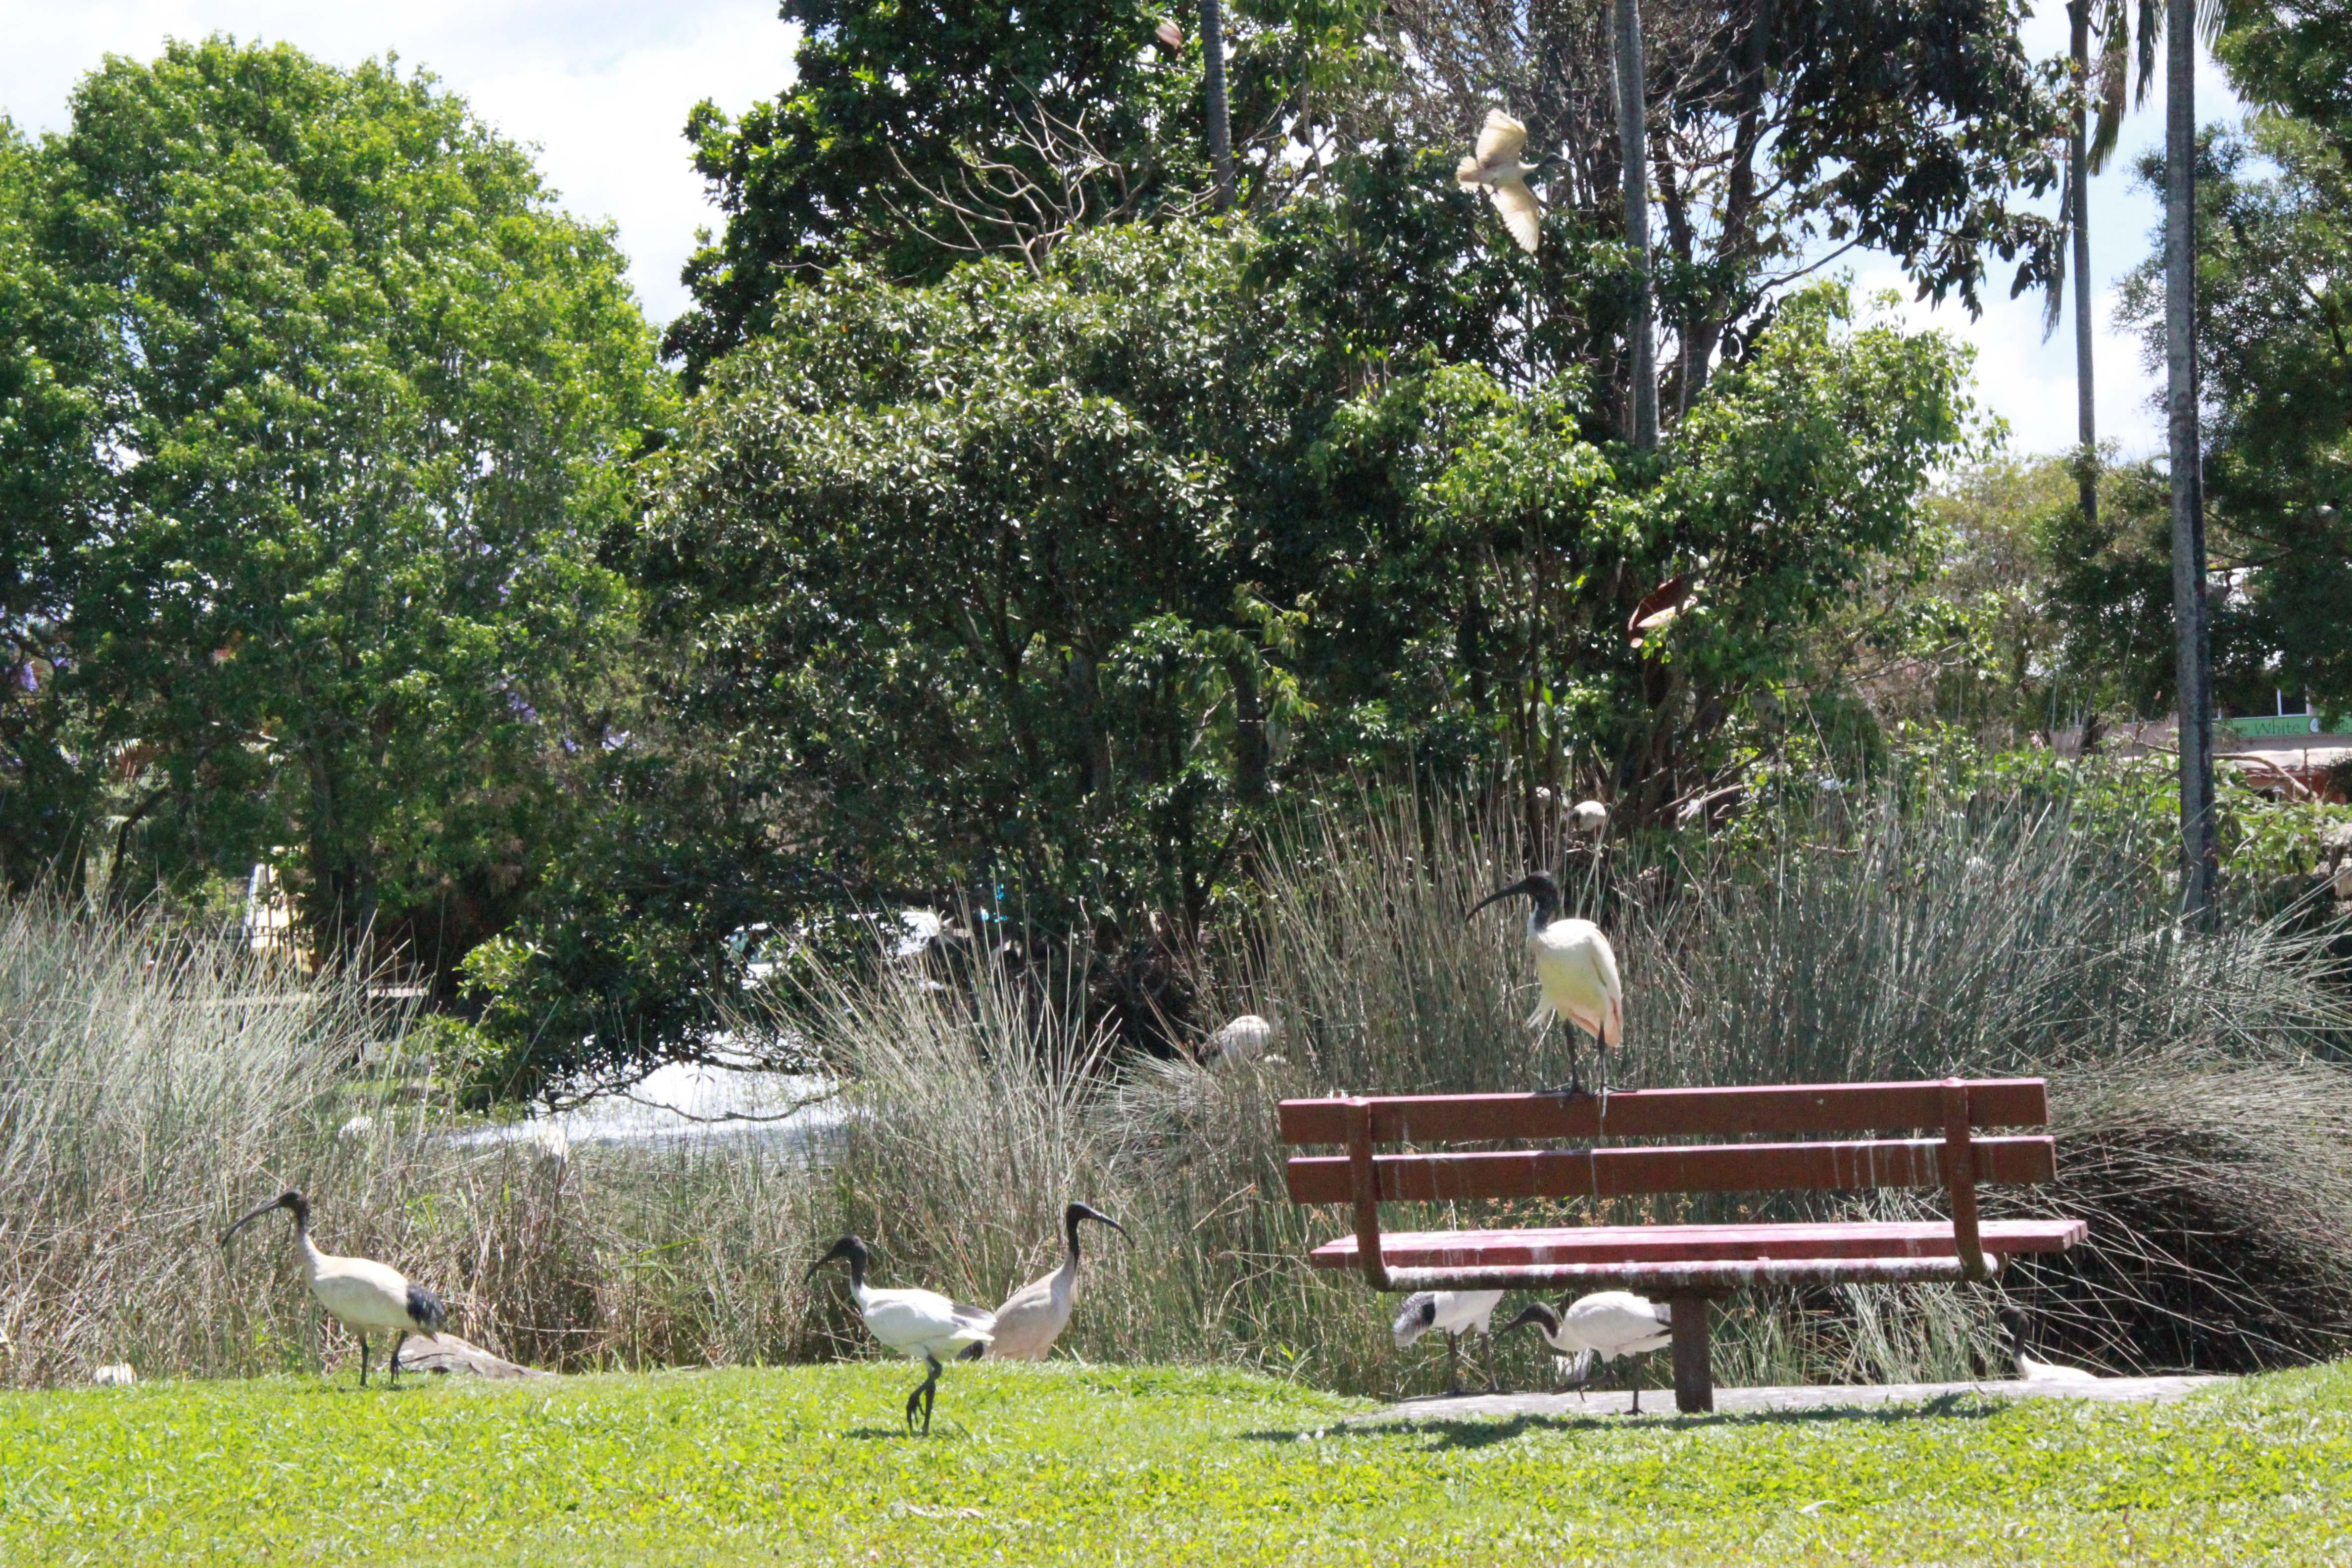 The pond has attracted a large ibis population.